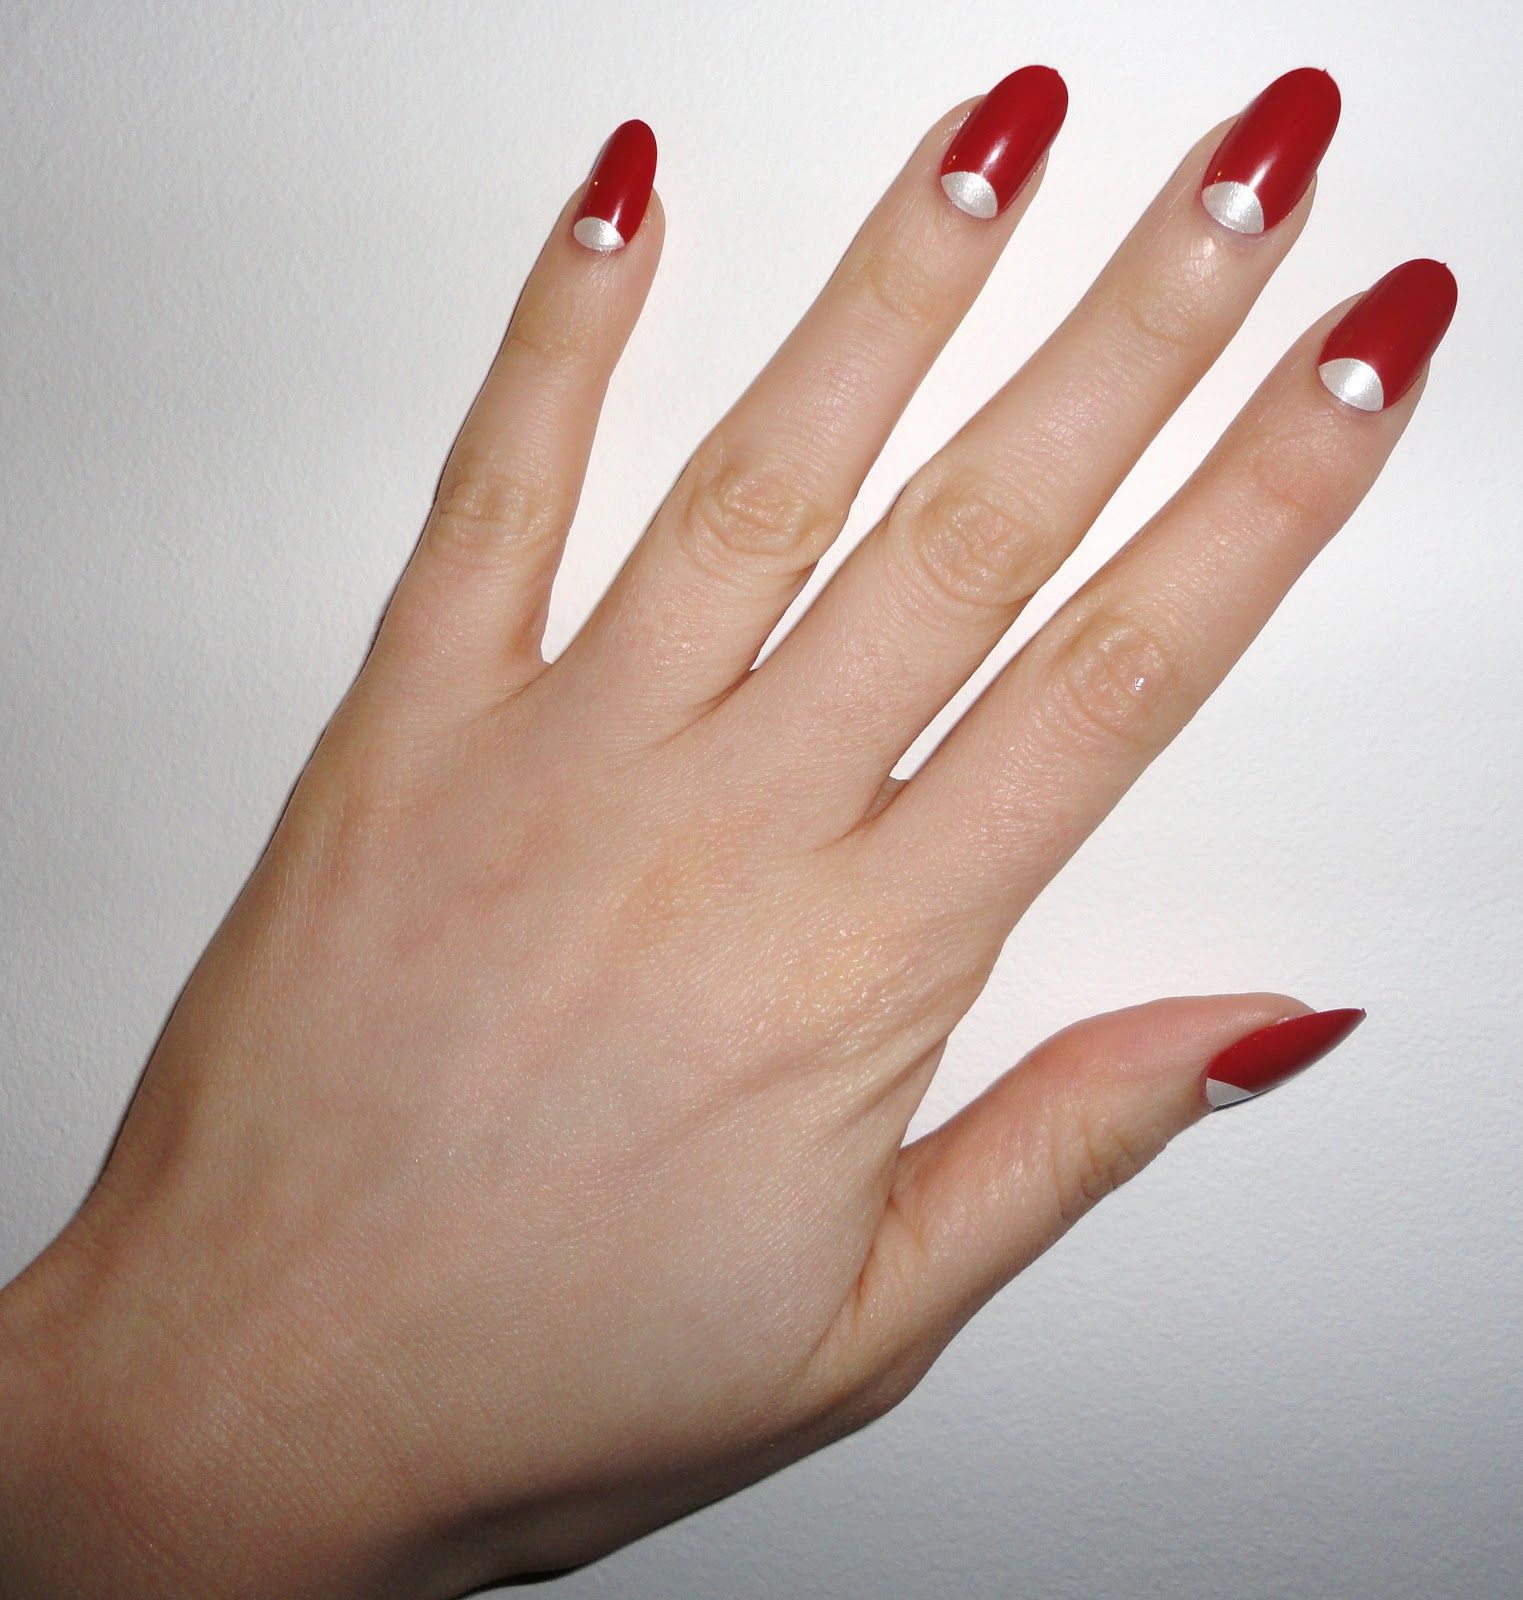 we love half moon nails because they are so classy! 60's fashions